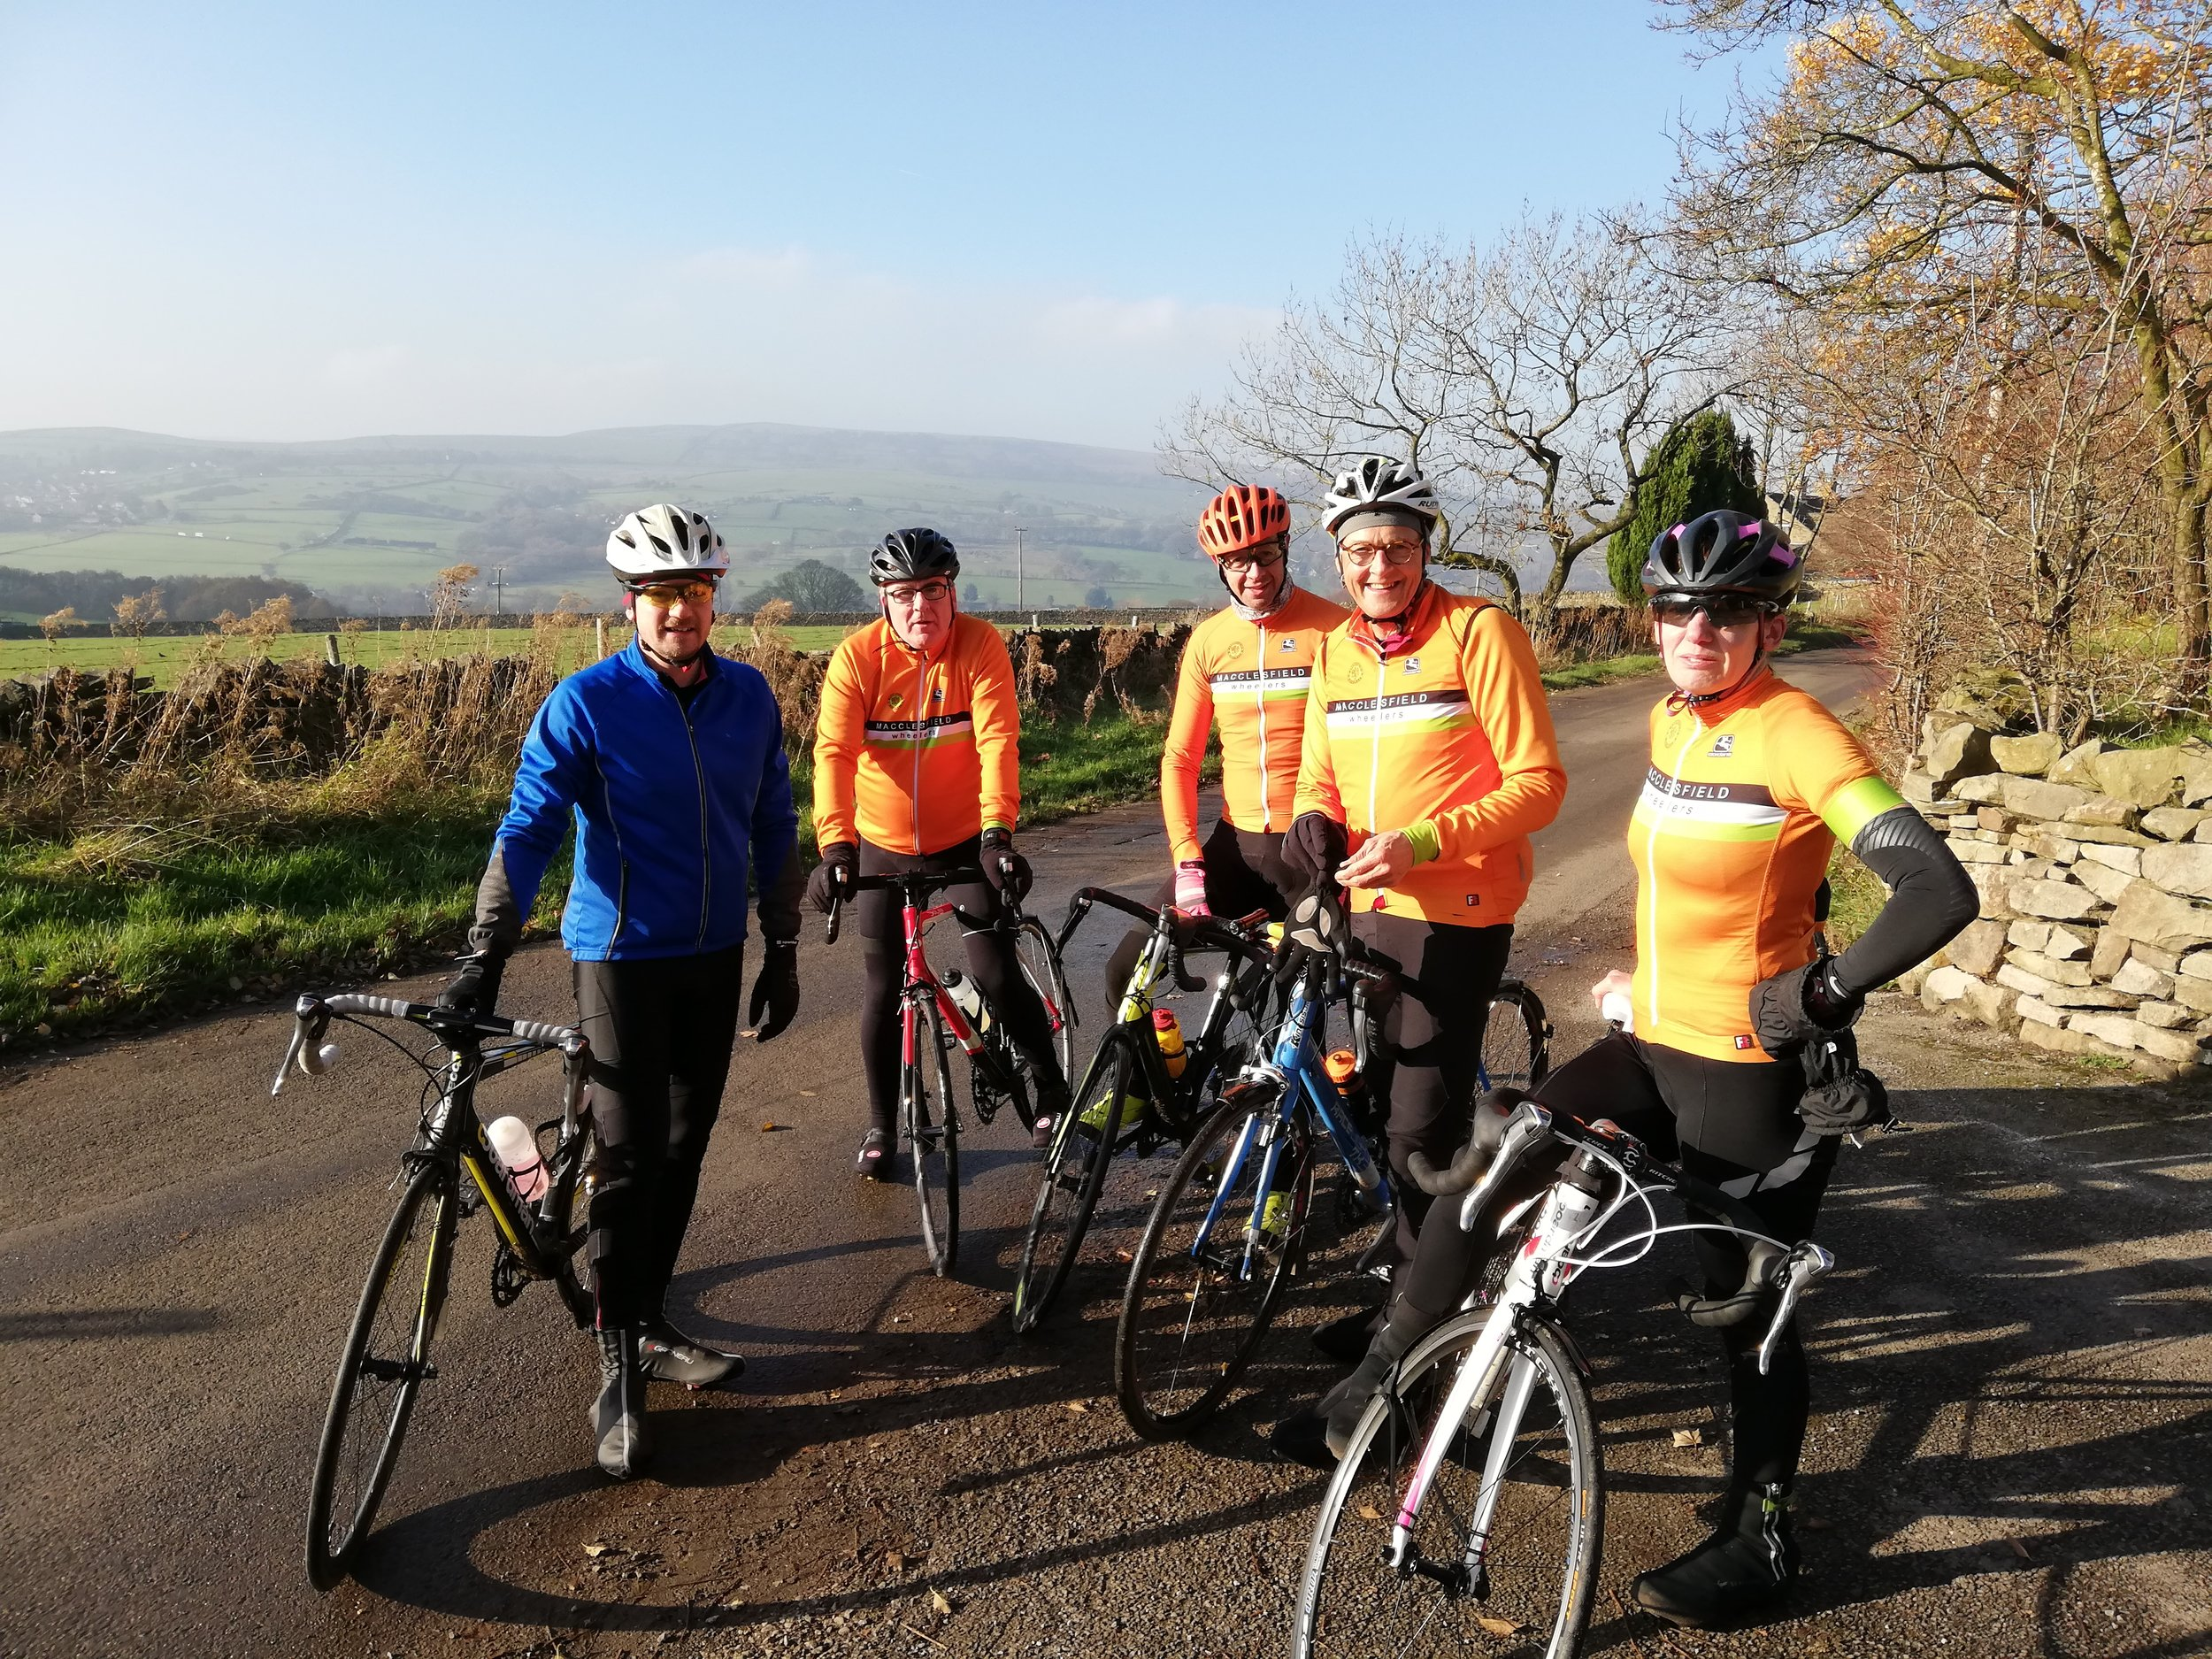 Nervous smiles just before we tackle Chinley Churn (well, three of us do but I am far to discreet to name the names).